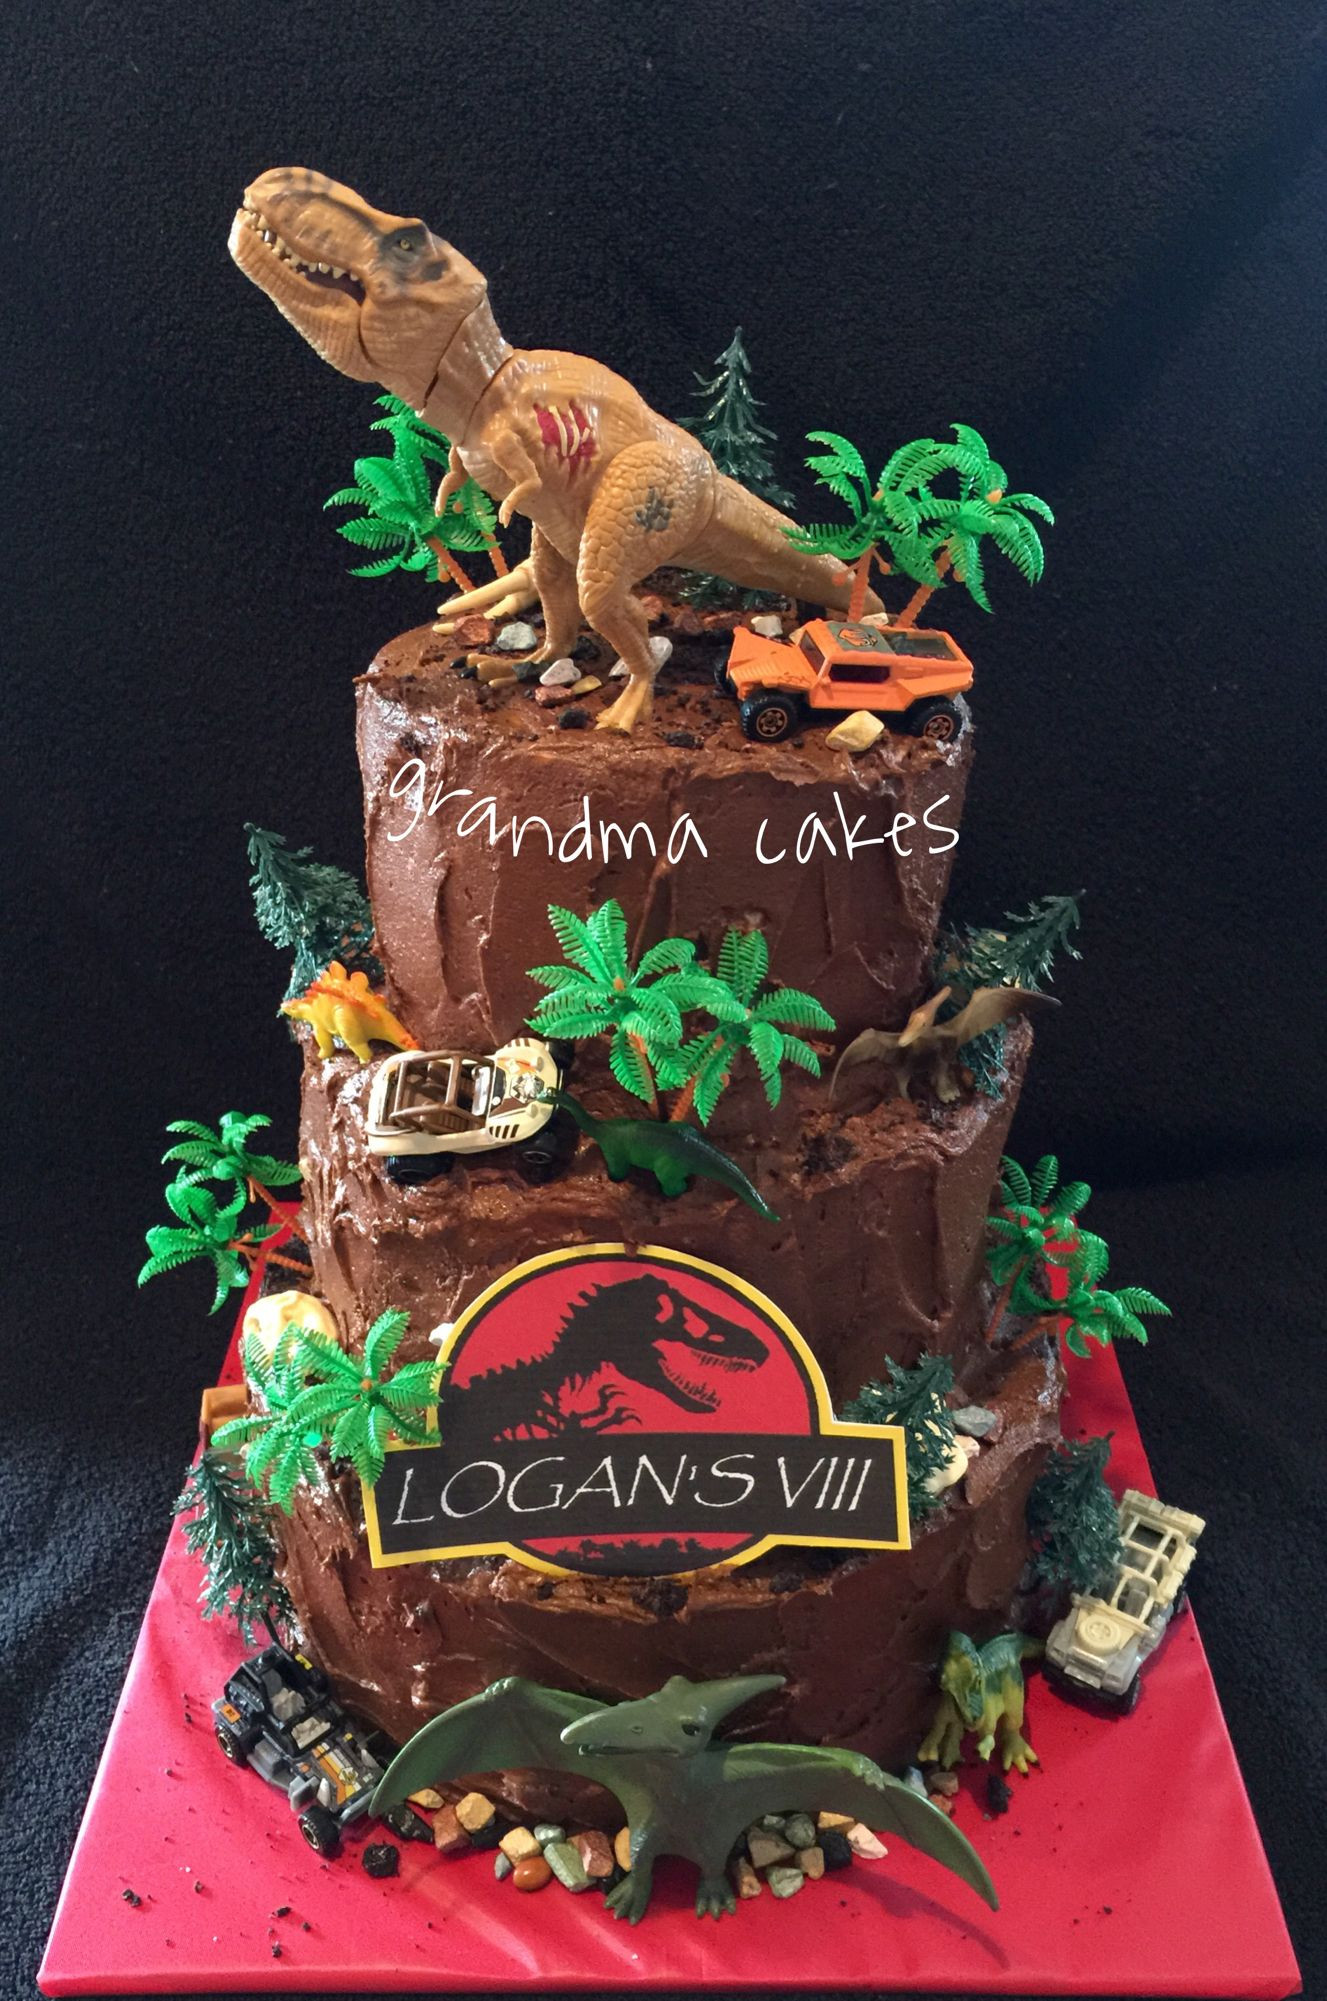 Best ideas about Jurassic World Birthday Cake . Save or Pin Jurassic World Park cake Cakes Now.